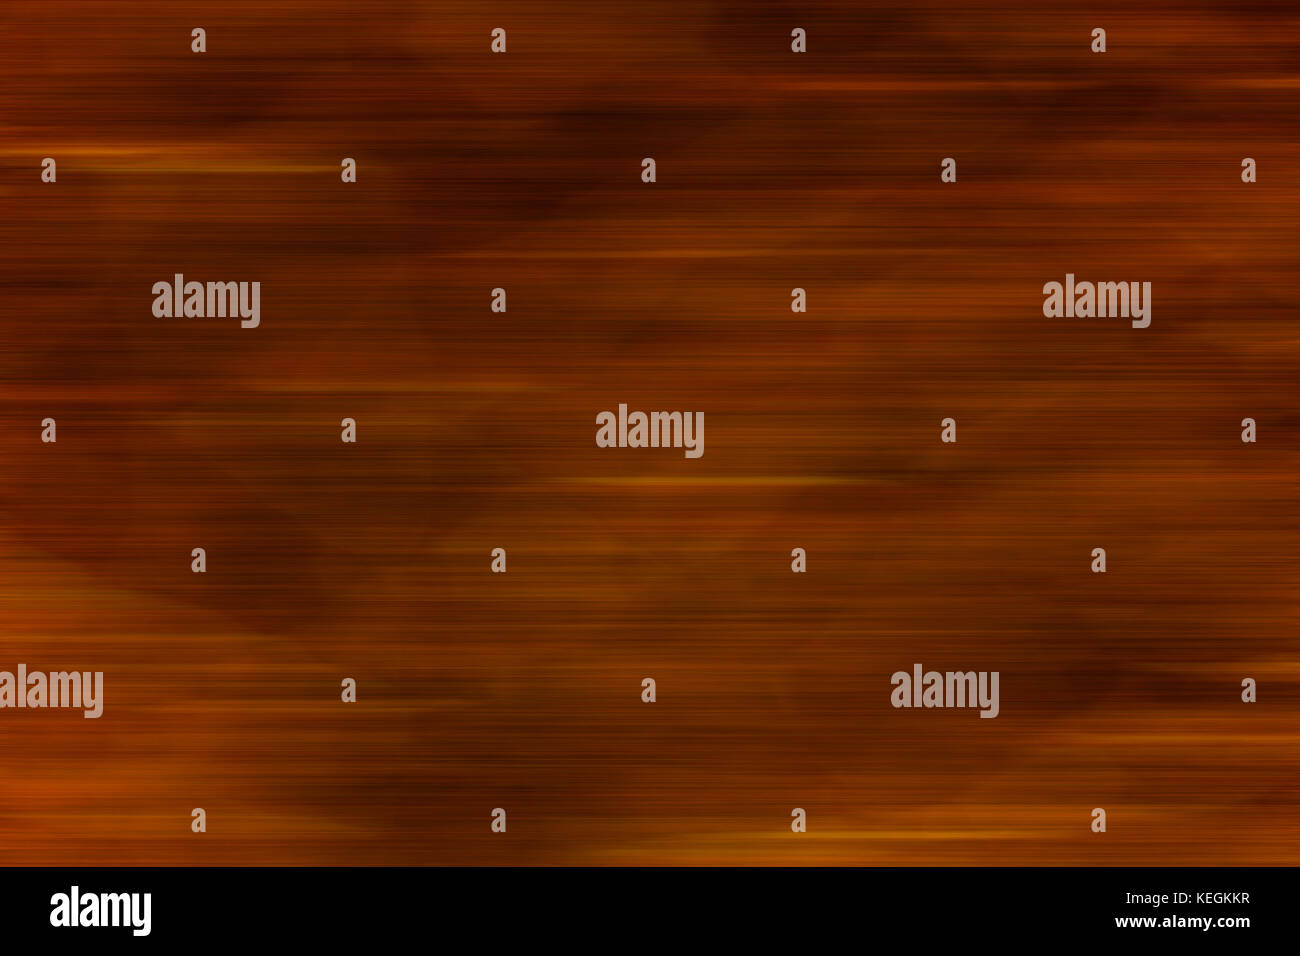 Elegant abstract horizontal brown background with lines - Stock Image